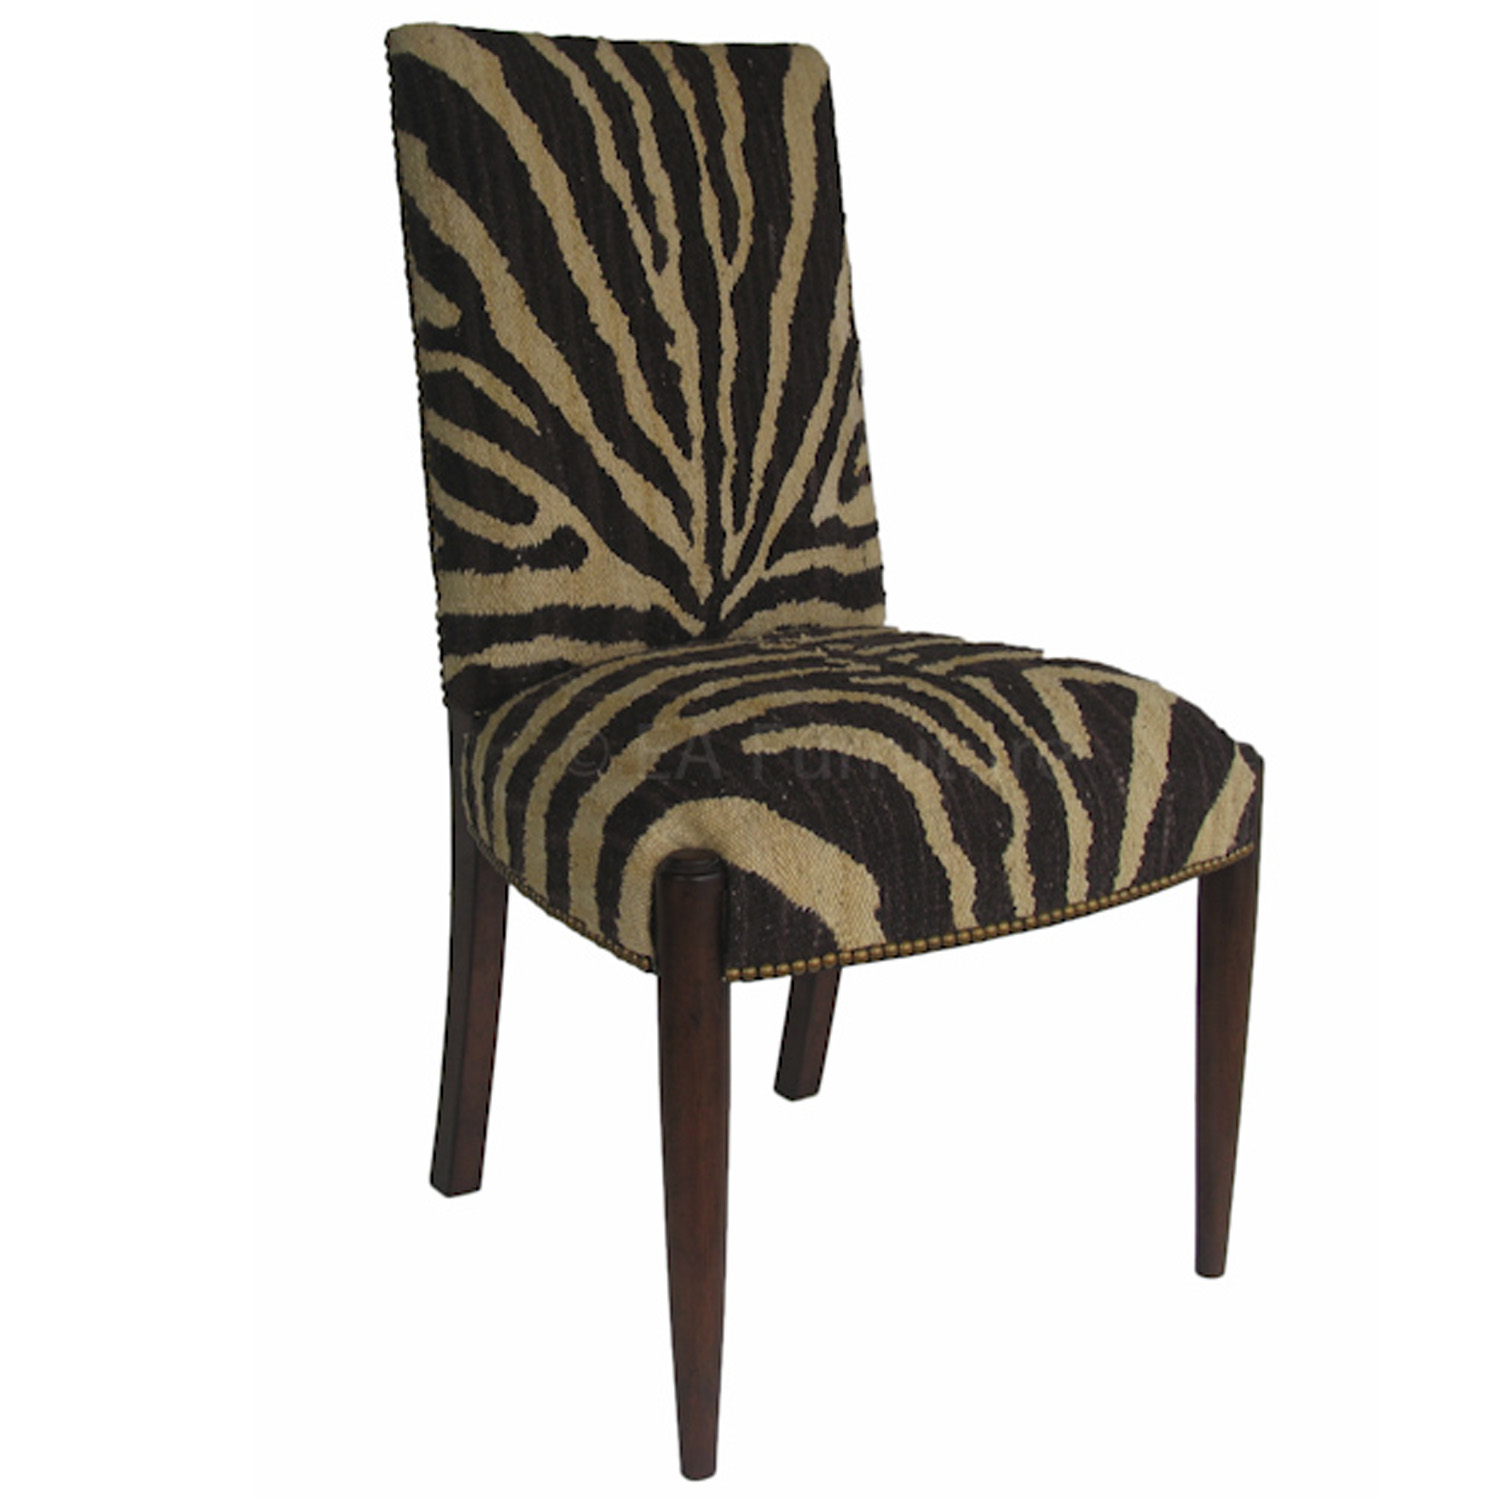 Black/Brown Zebra Side Chair CH27S BR10 5092AHS